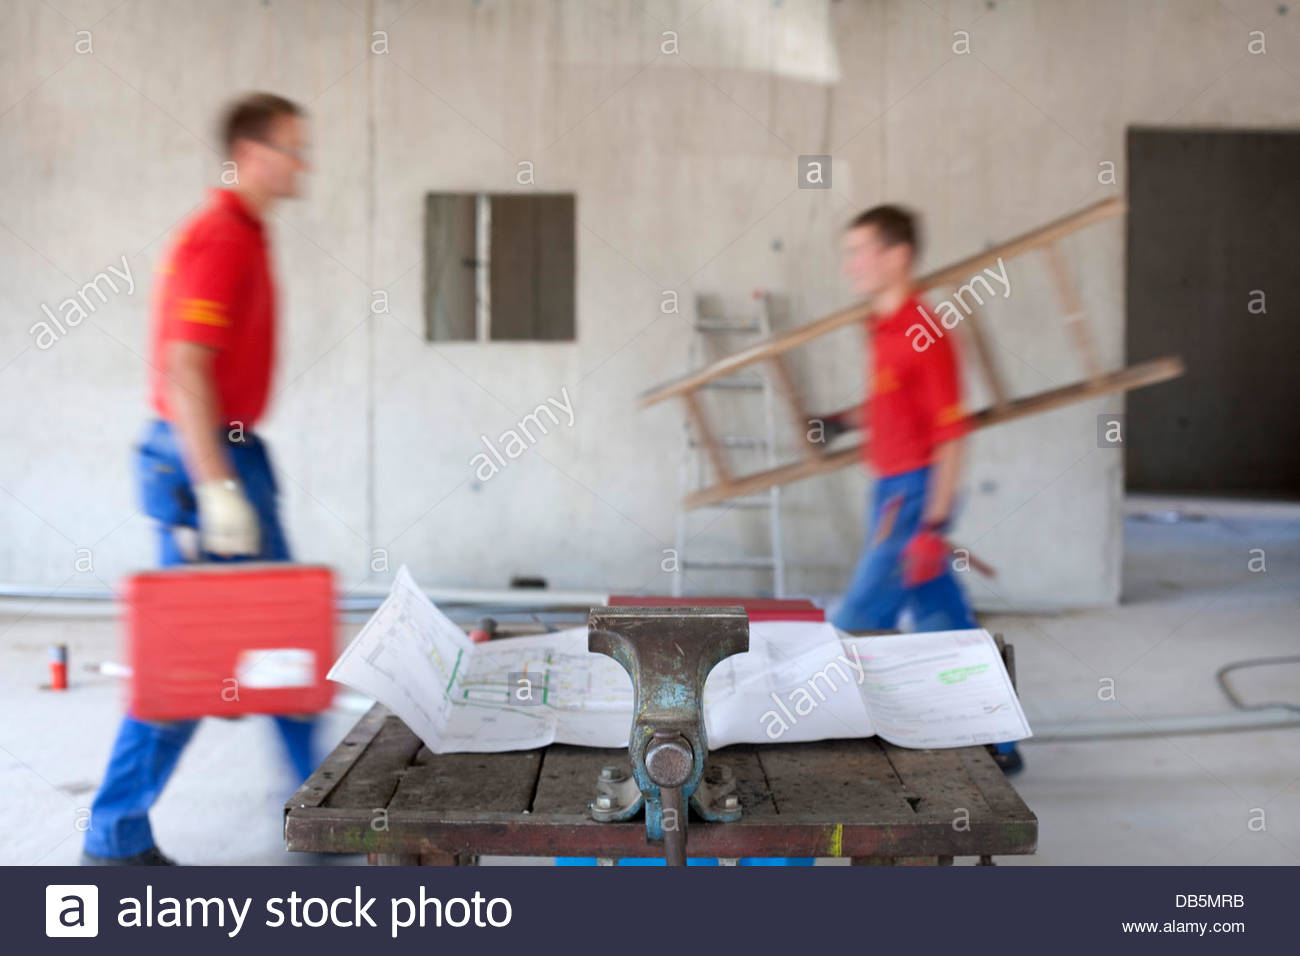 Worker working in an incomplete house - Stock Image